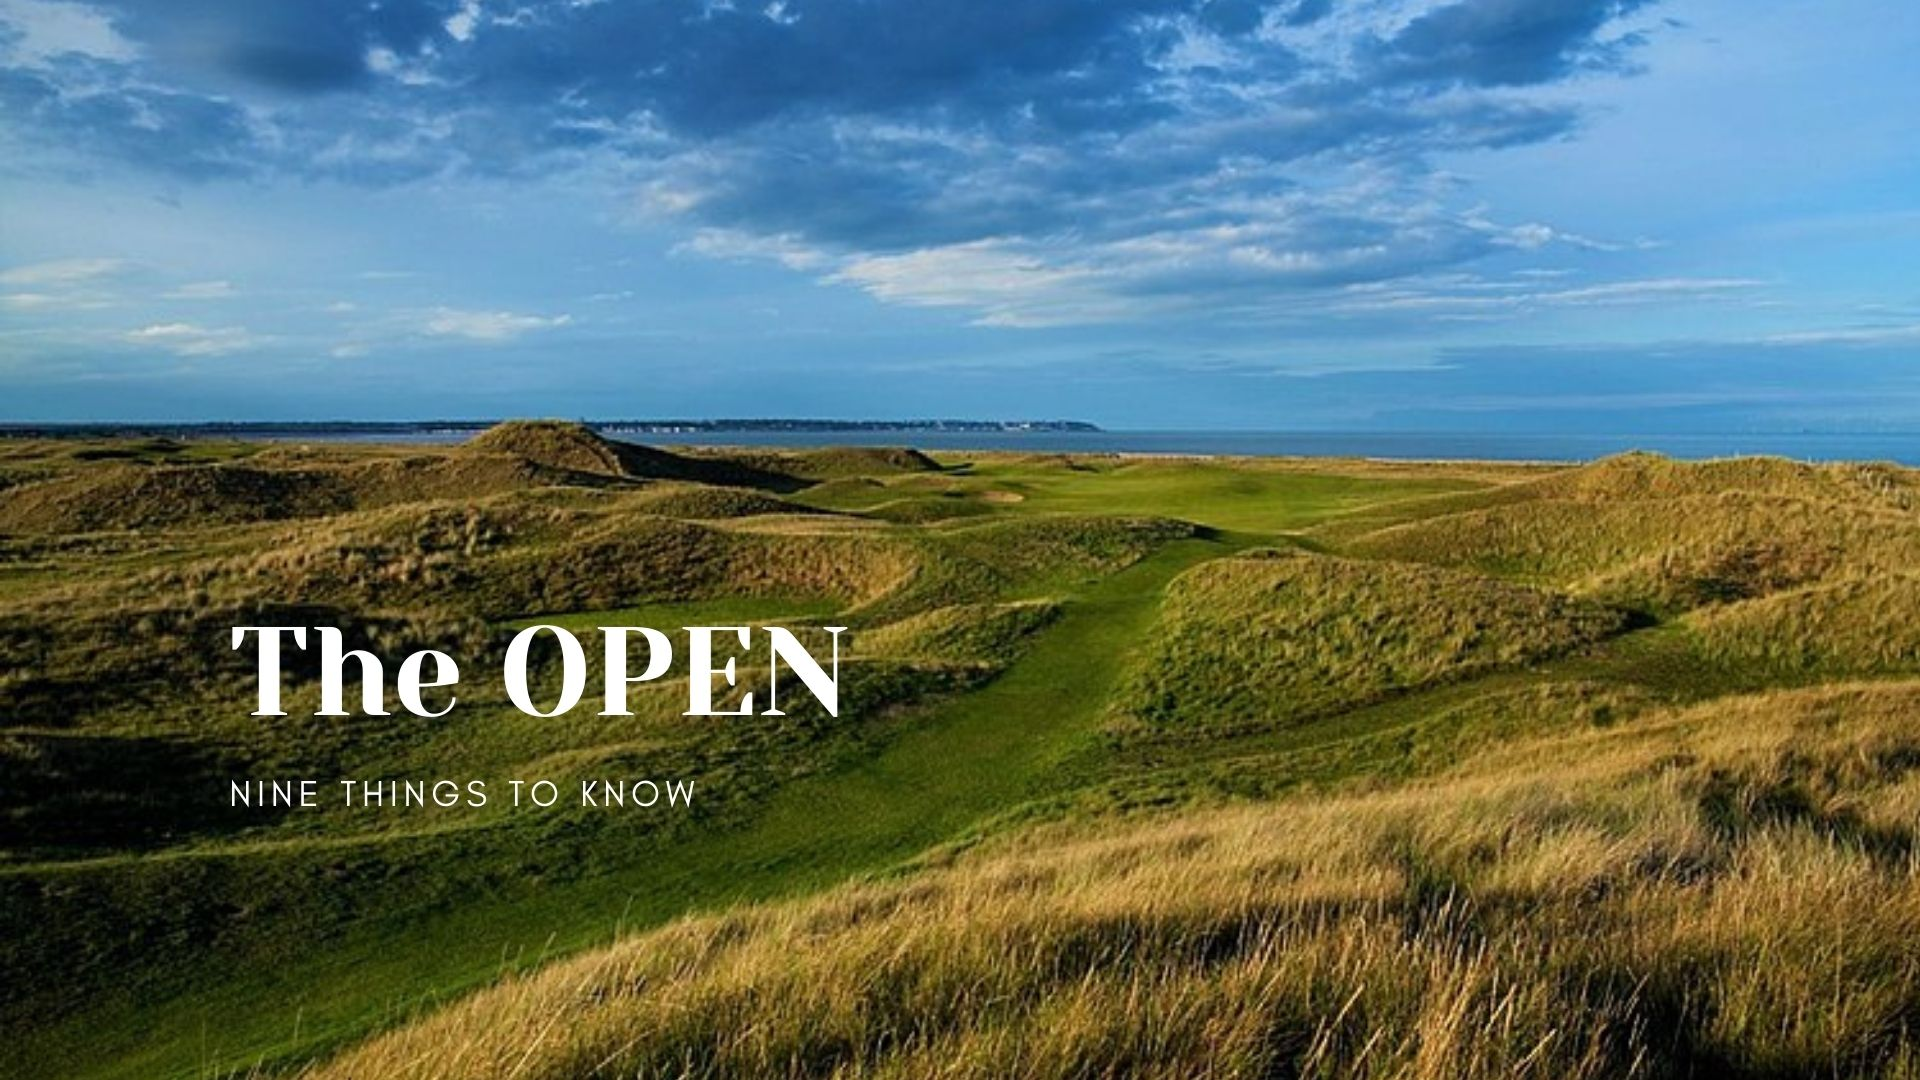 The Open Championship returns to Royal St. George's